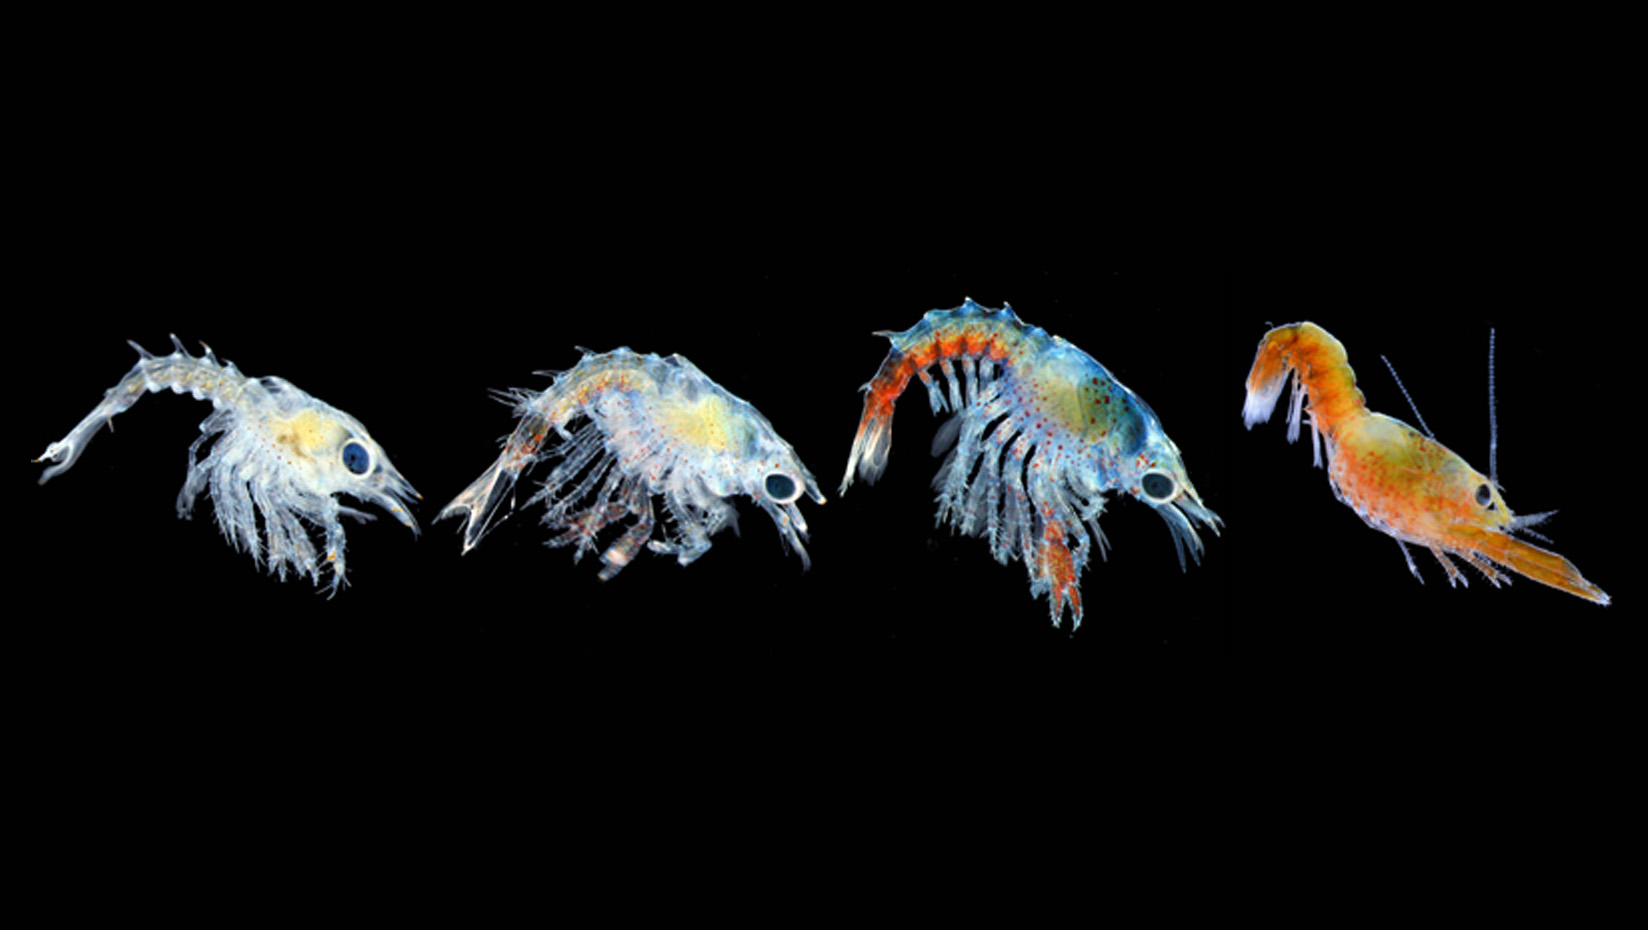 featured image for DMC, Bigelow study: Rising ocean temperatures threaten baby lobsters